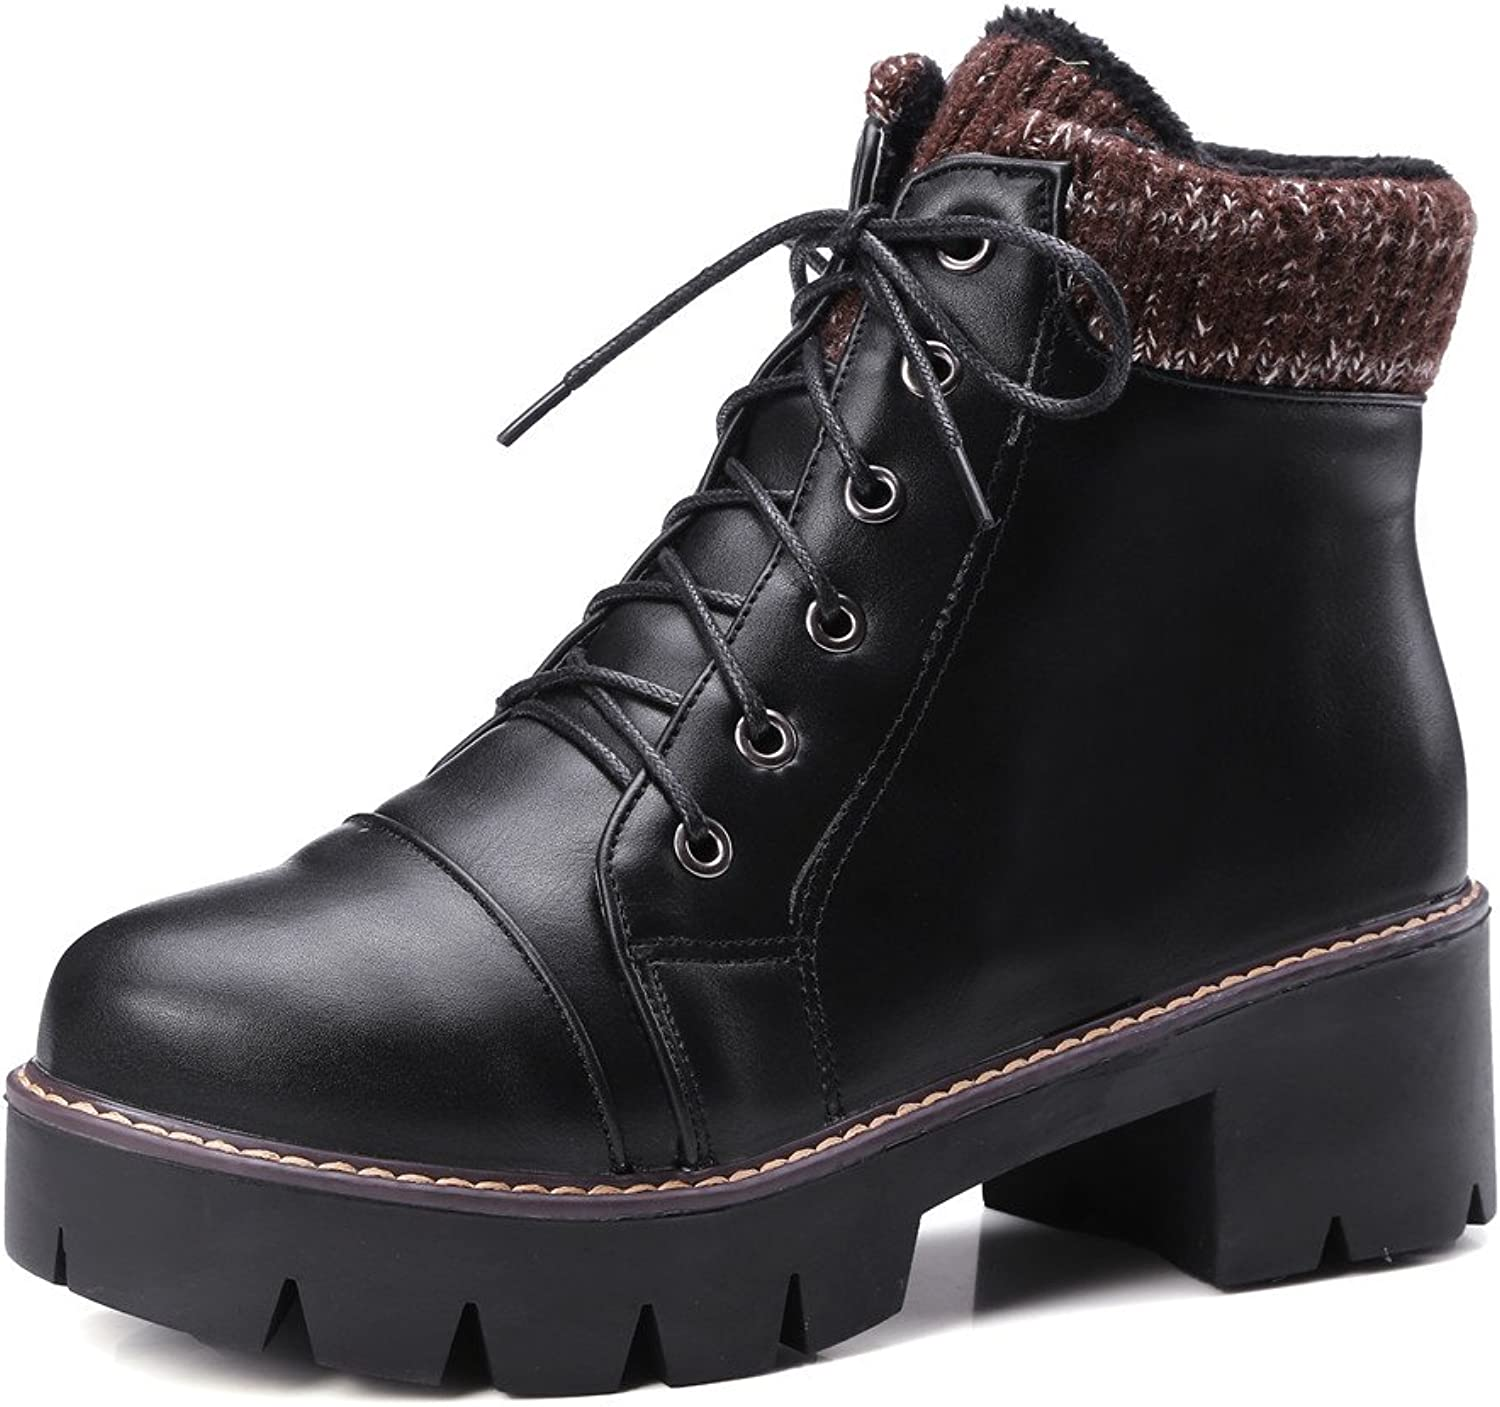 Lucksender Womens Short Plush Round Toe Lace Up Platform Chunky Mid Heel Short Boots